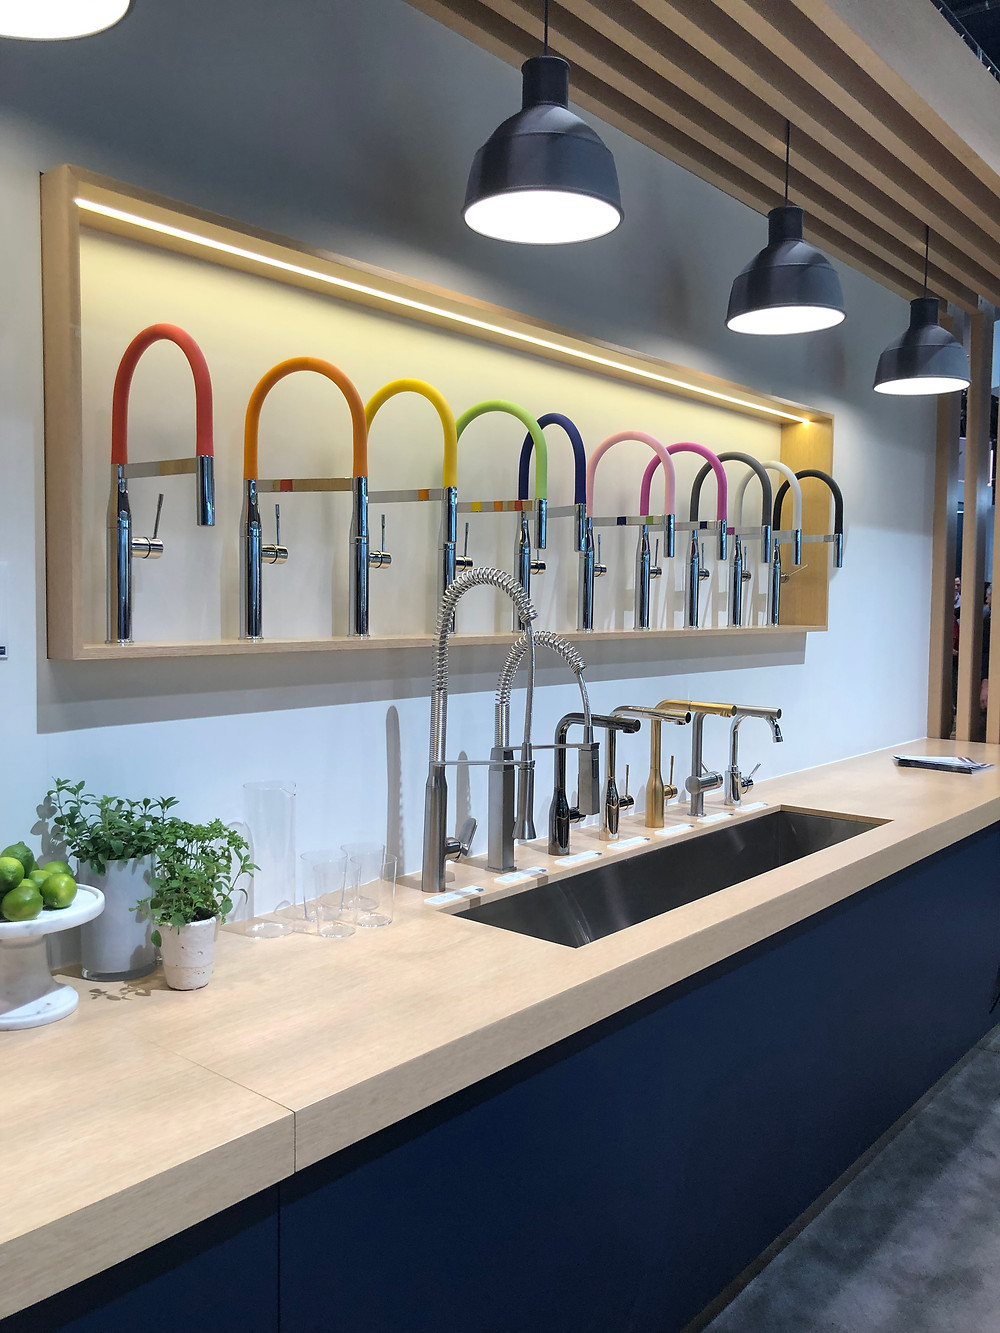 Colorful faucets various finishes KBIS 2019